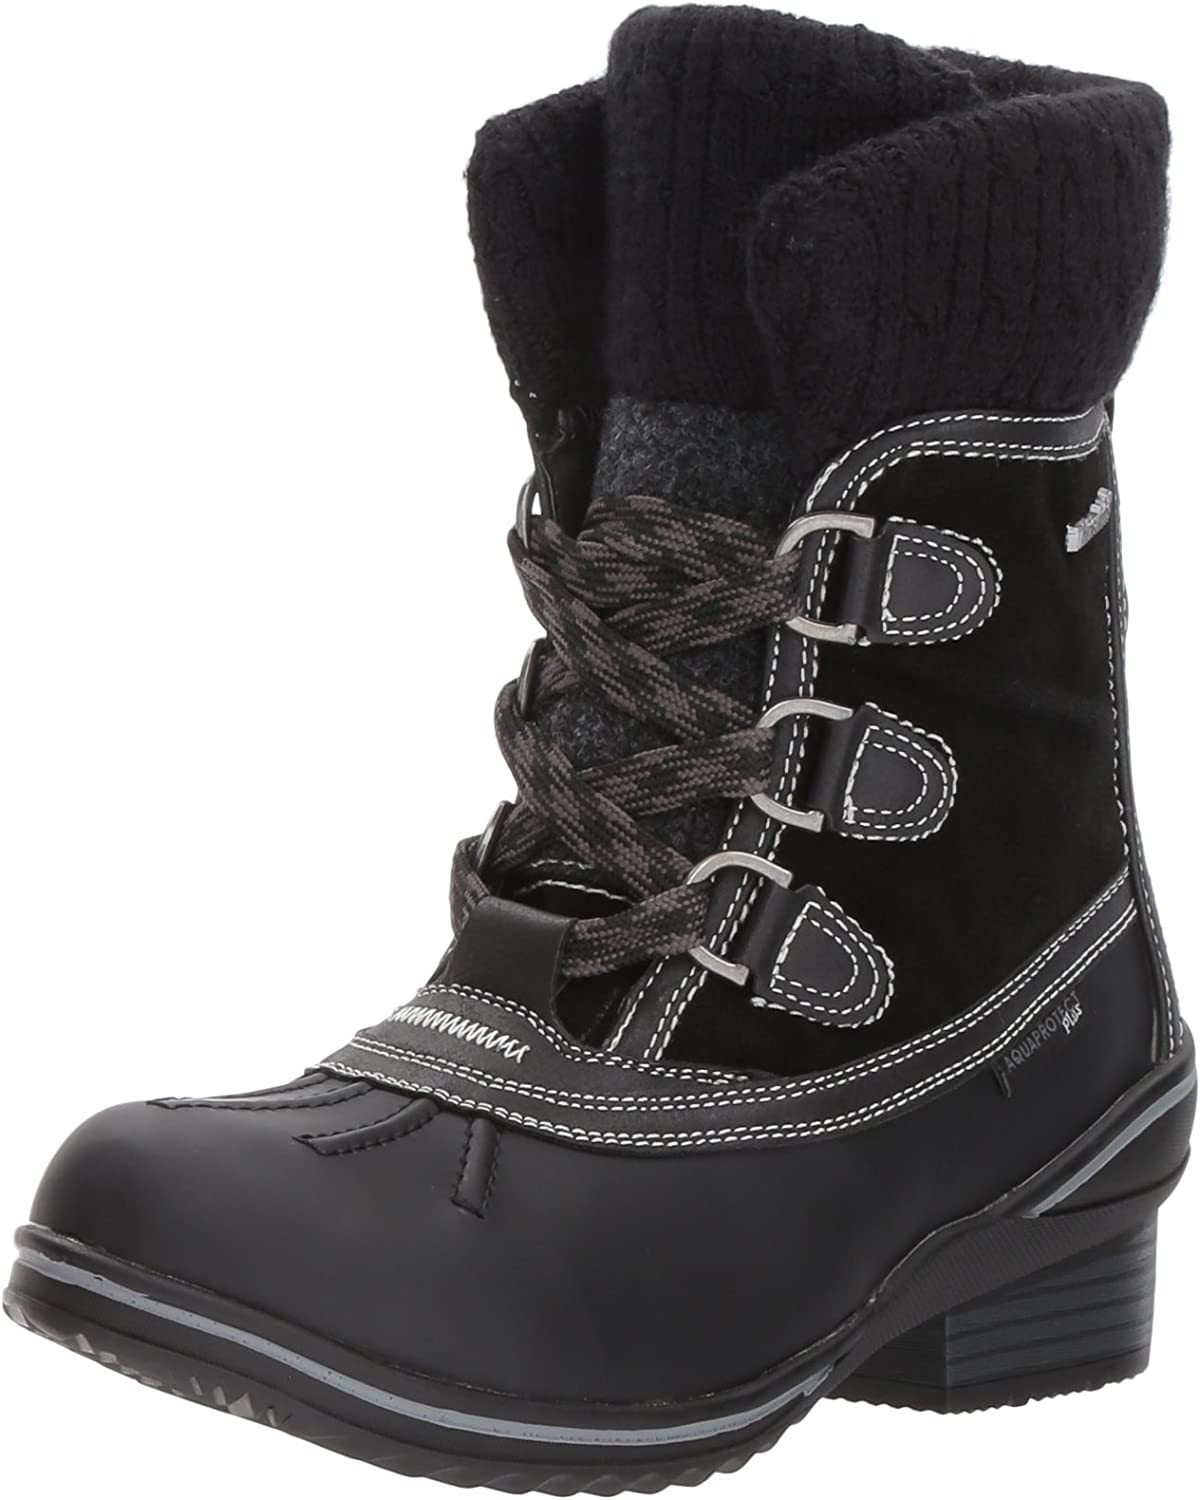 Blondo Womens Meggy Waterproof Snow Boot